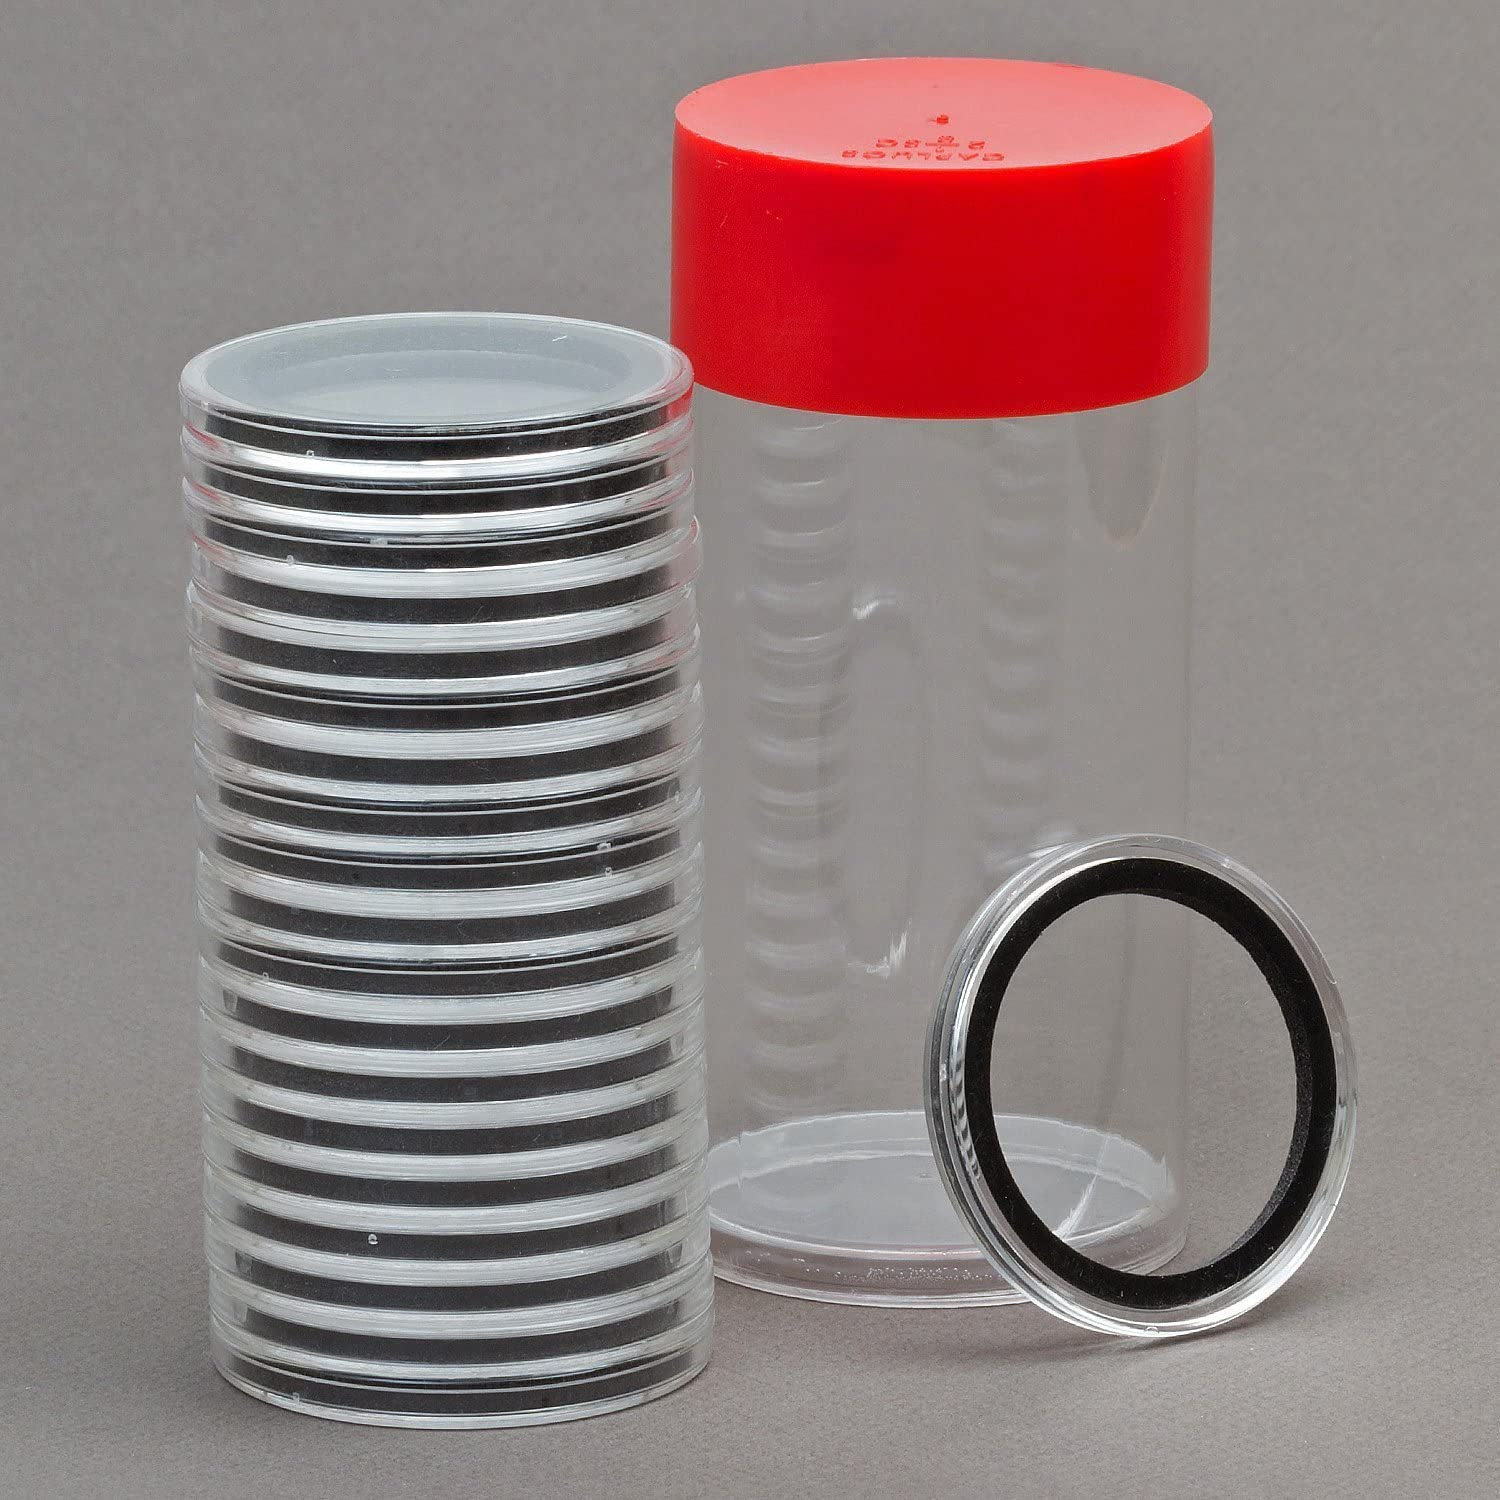 CAPS I Size Tube holds up to 26 I size Air-Tite Coin Capsules